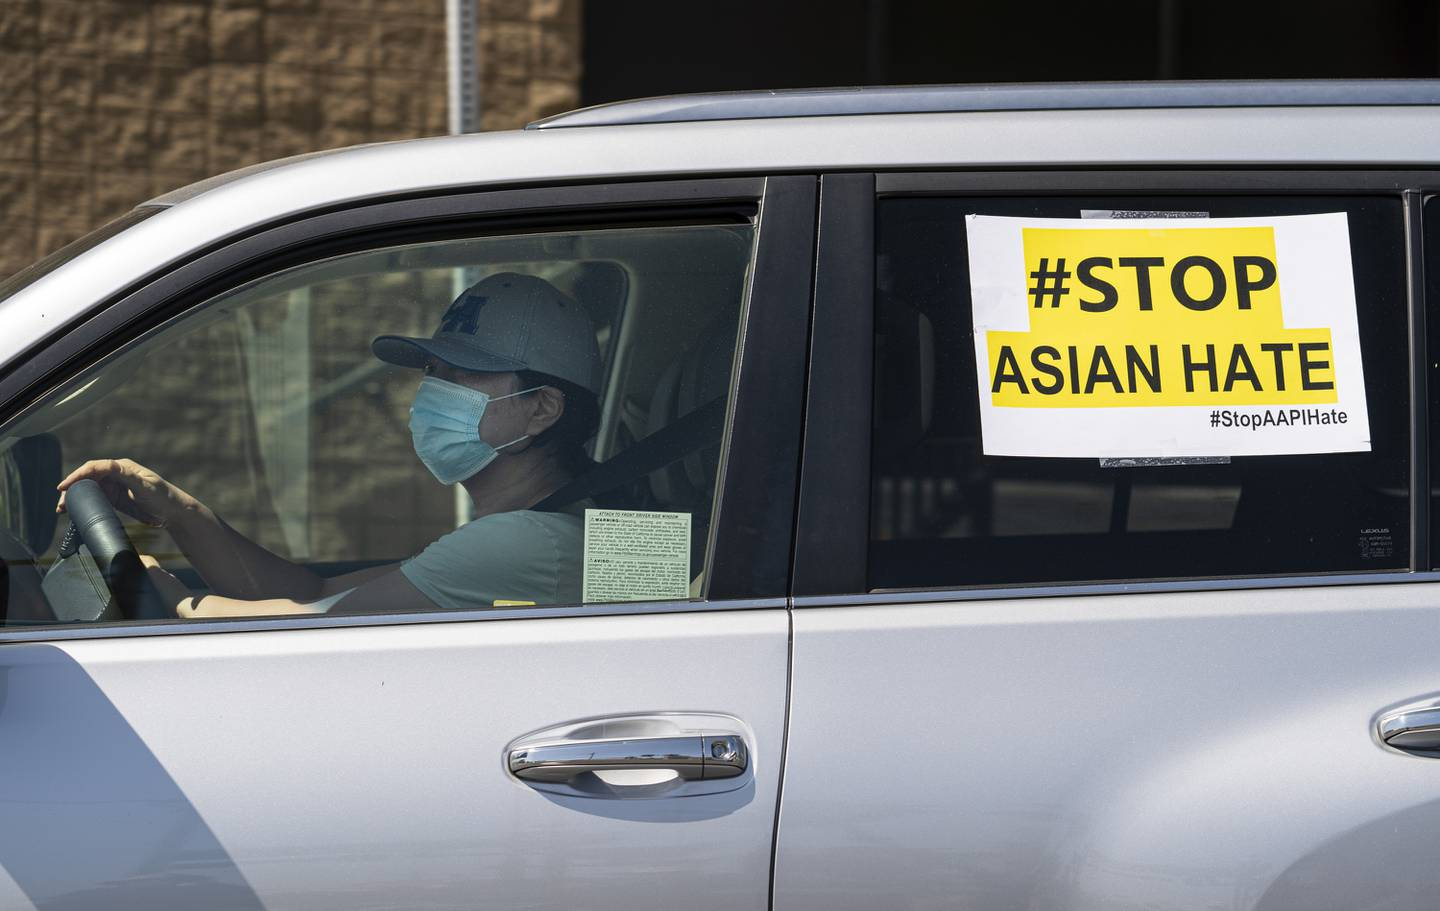 """FILE - In this March 19, 2021, file photo, members of the Korean American Federation of Los Angeles drive with signs reading: """"#Stop Asian Hate,"""" in a caravan around Koreatown to denounce hate against the Asian American and Pacific Islander communities in Los Angeles. After more than a year filled with attacks on Asian Americans unfairly blamed for the coronavirus, a majority of Americans across racial and ethnic groups believe anti-Asian American discrimination has worsened over the last year. A poll from the The Associated Press-NORC Center for Public Affairs Research finds nearly half of Americans believe Asian Americans encounter """"a great deal"""" or """"quite a lot"""" of discrimination. (AP Photo/Damian Dovarganes, File)"""